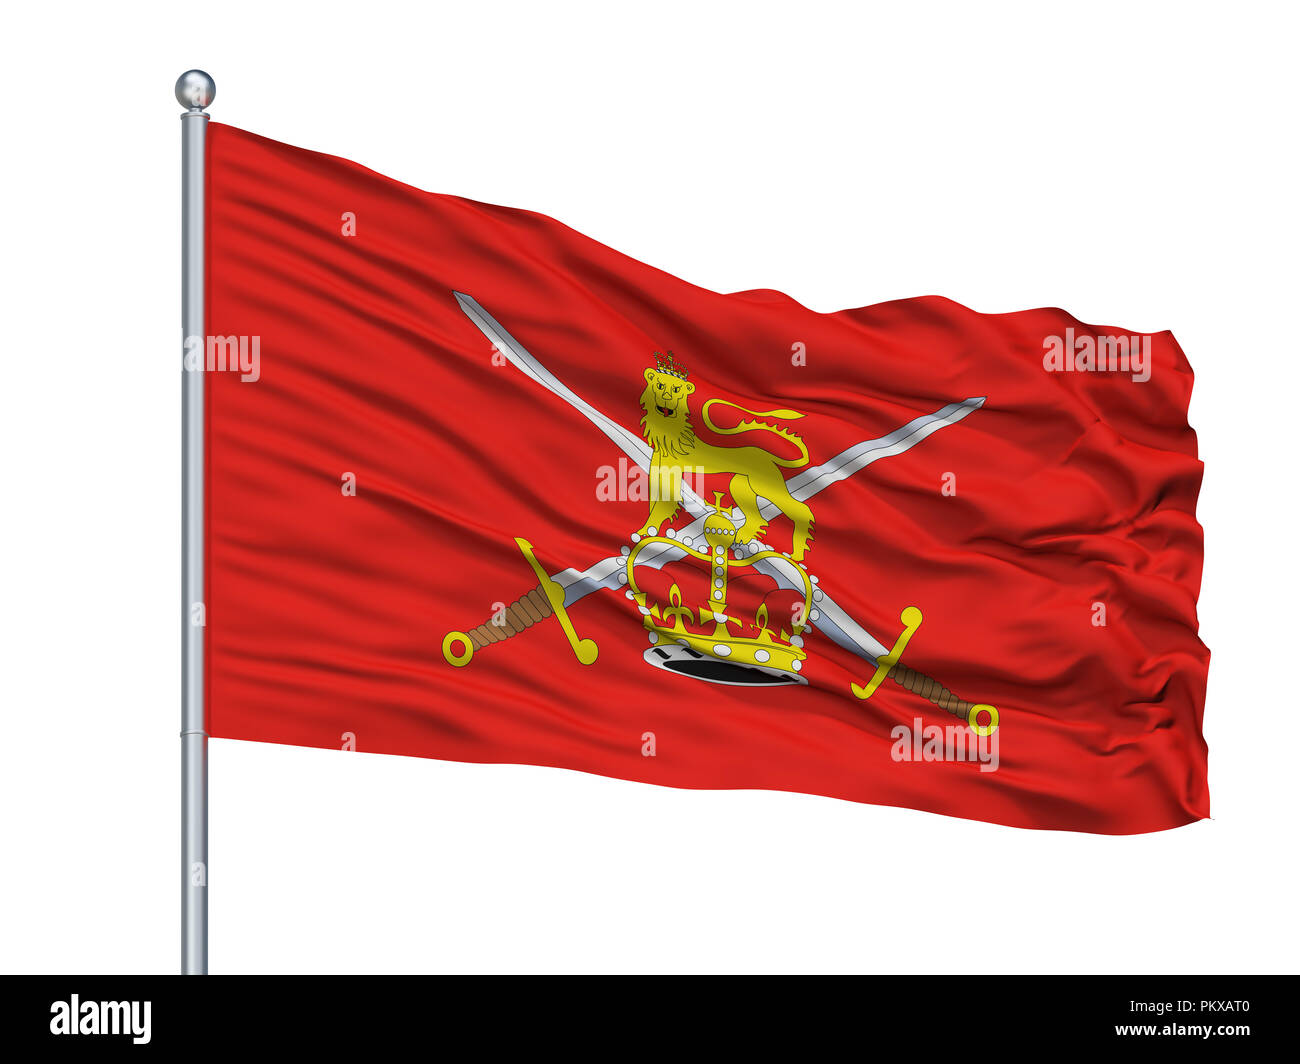 British Army Flag On Flagpole, Isolated On White Background, 3D Rendering - Stock Image